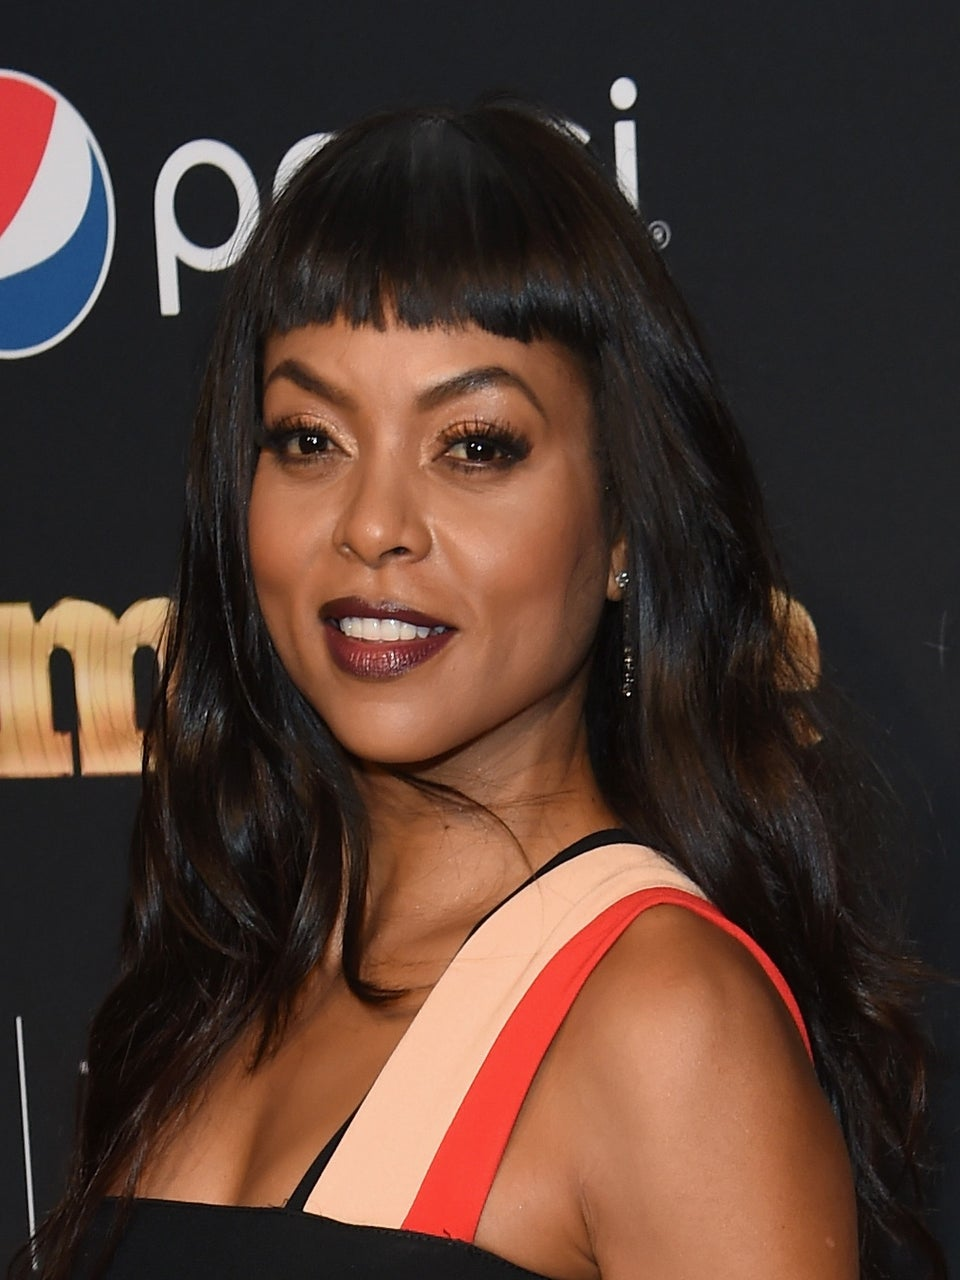 Taraji P. Henson Just Got Extreme Bangs